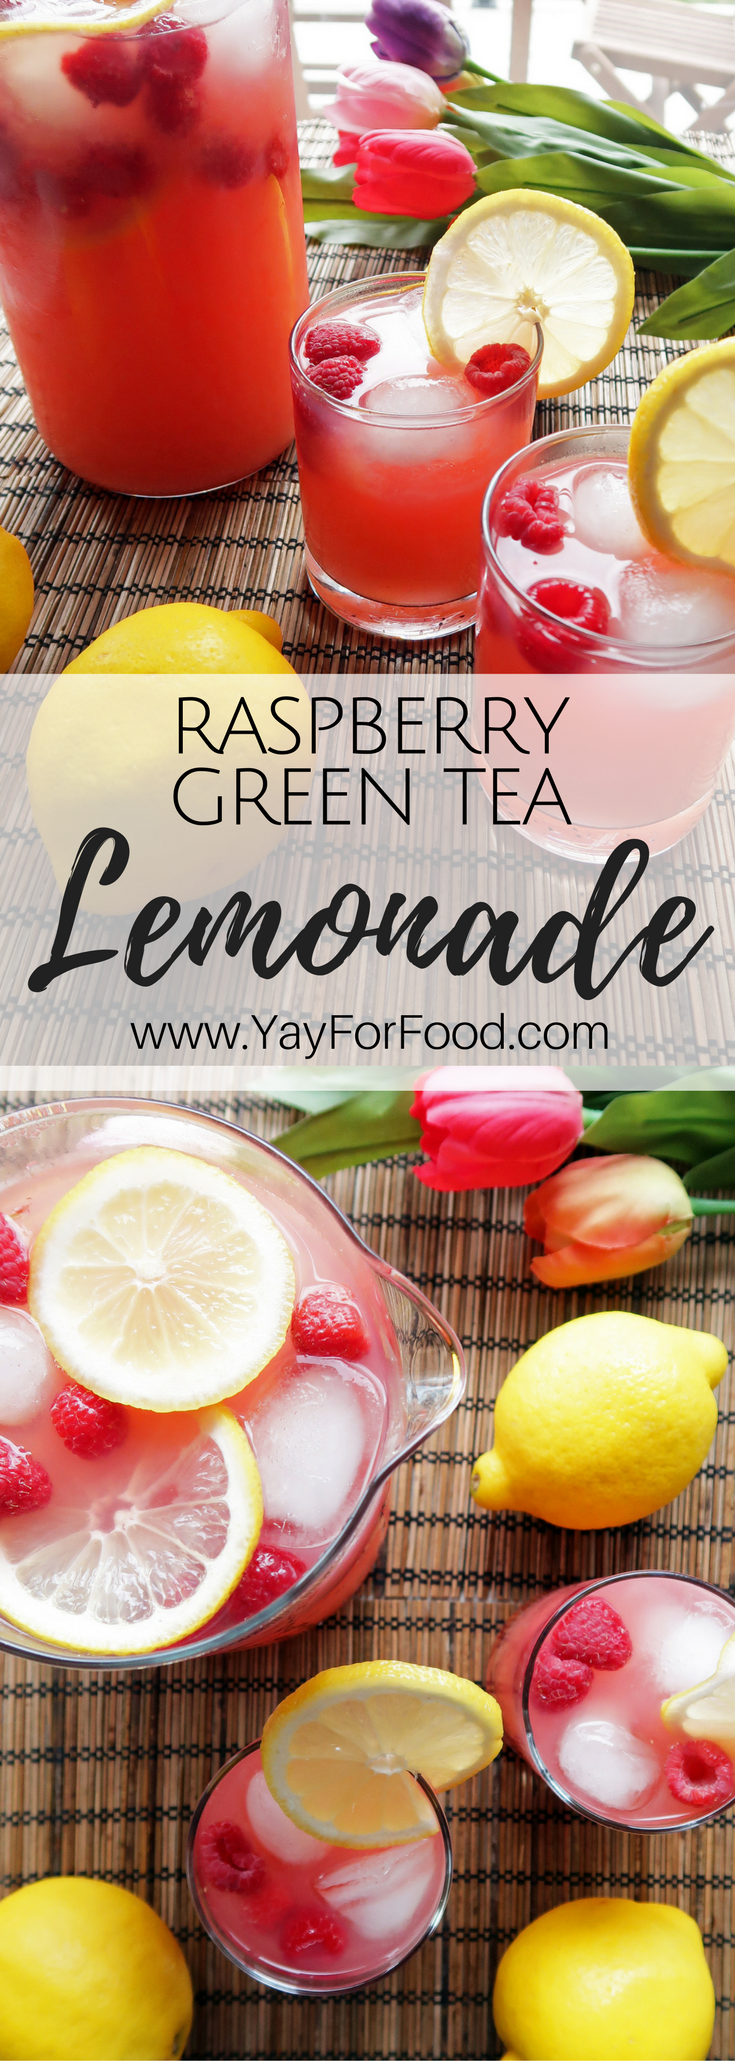 Homemade Raspberry Green Tea Lemonade #nonalcoholicsummerdrinks